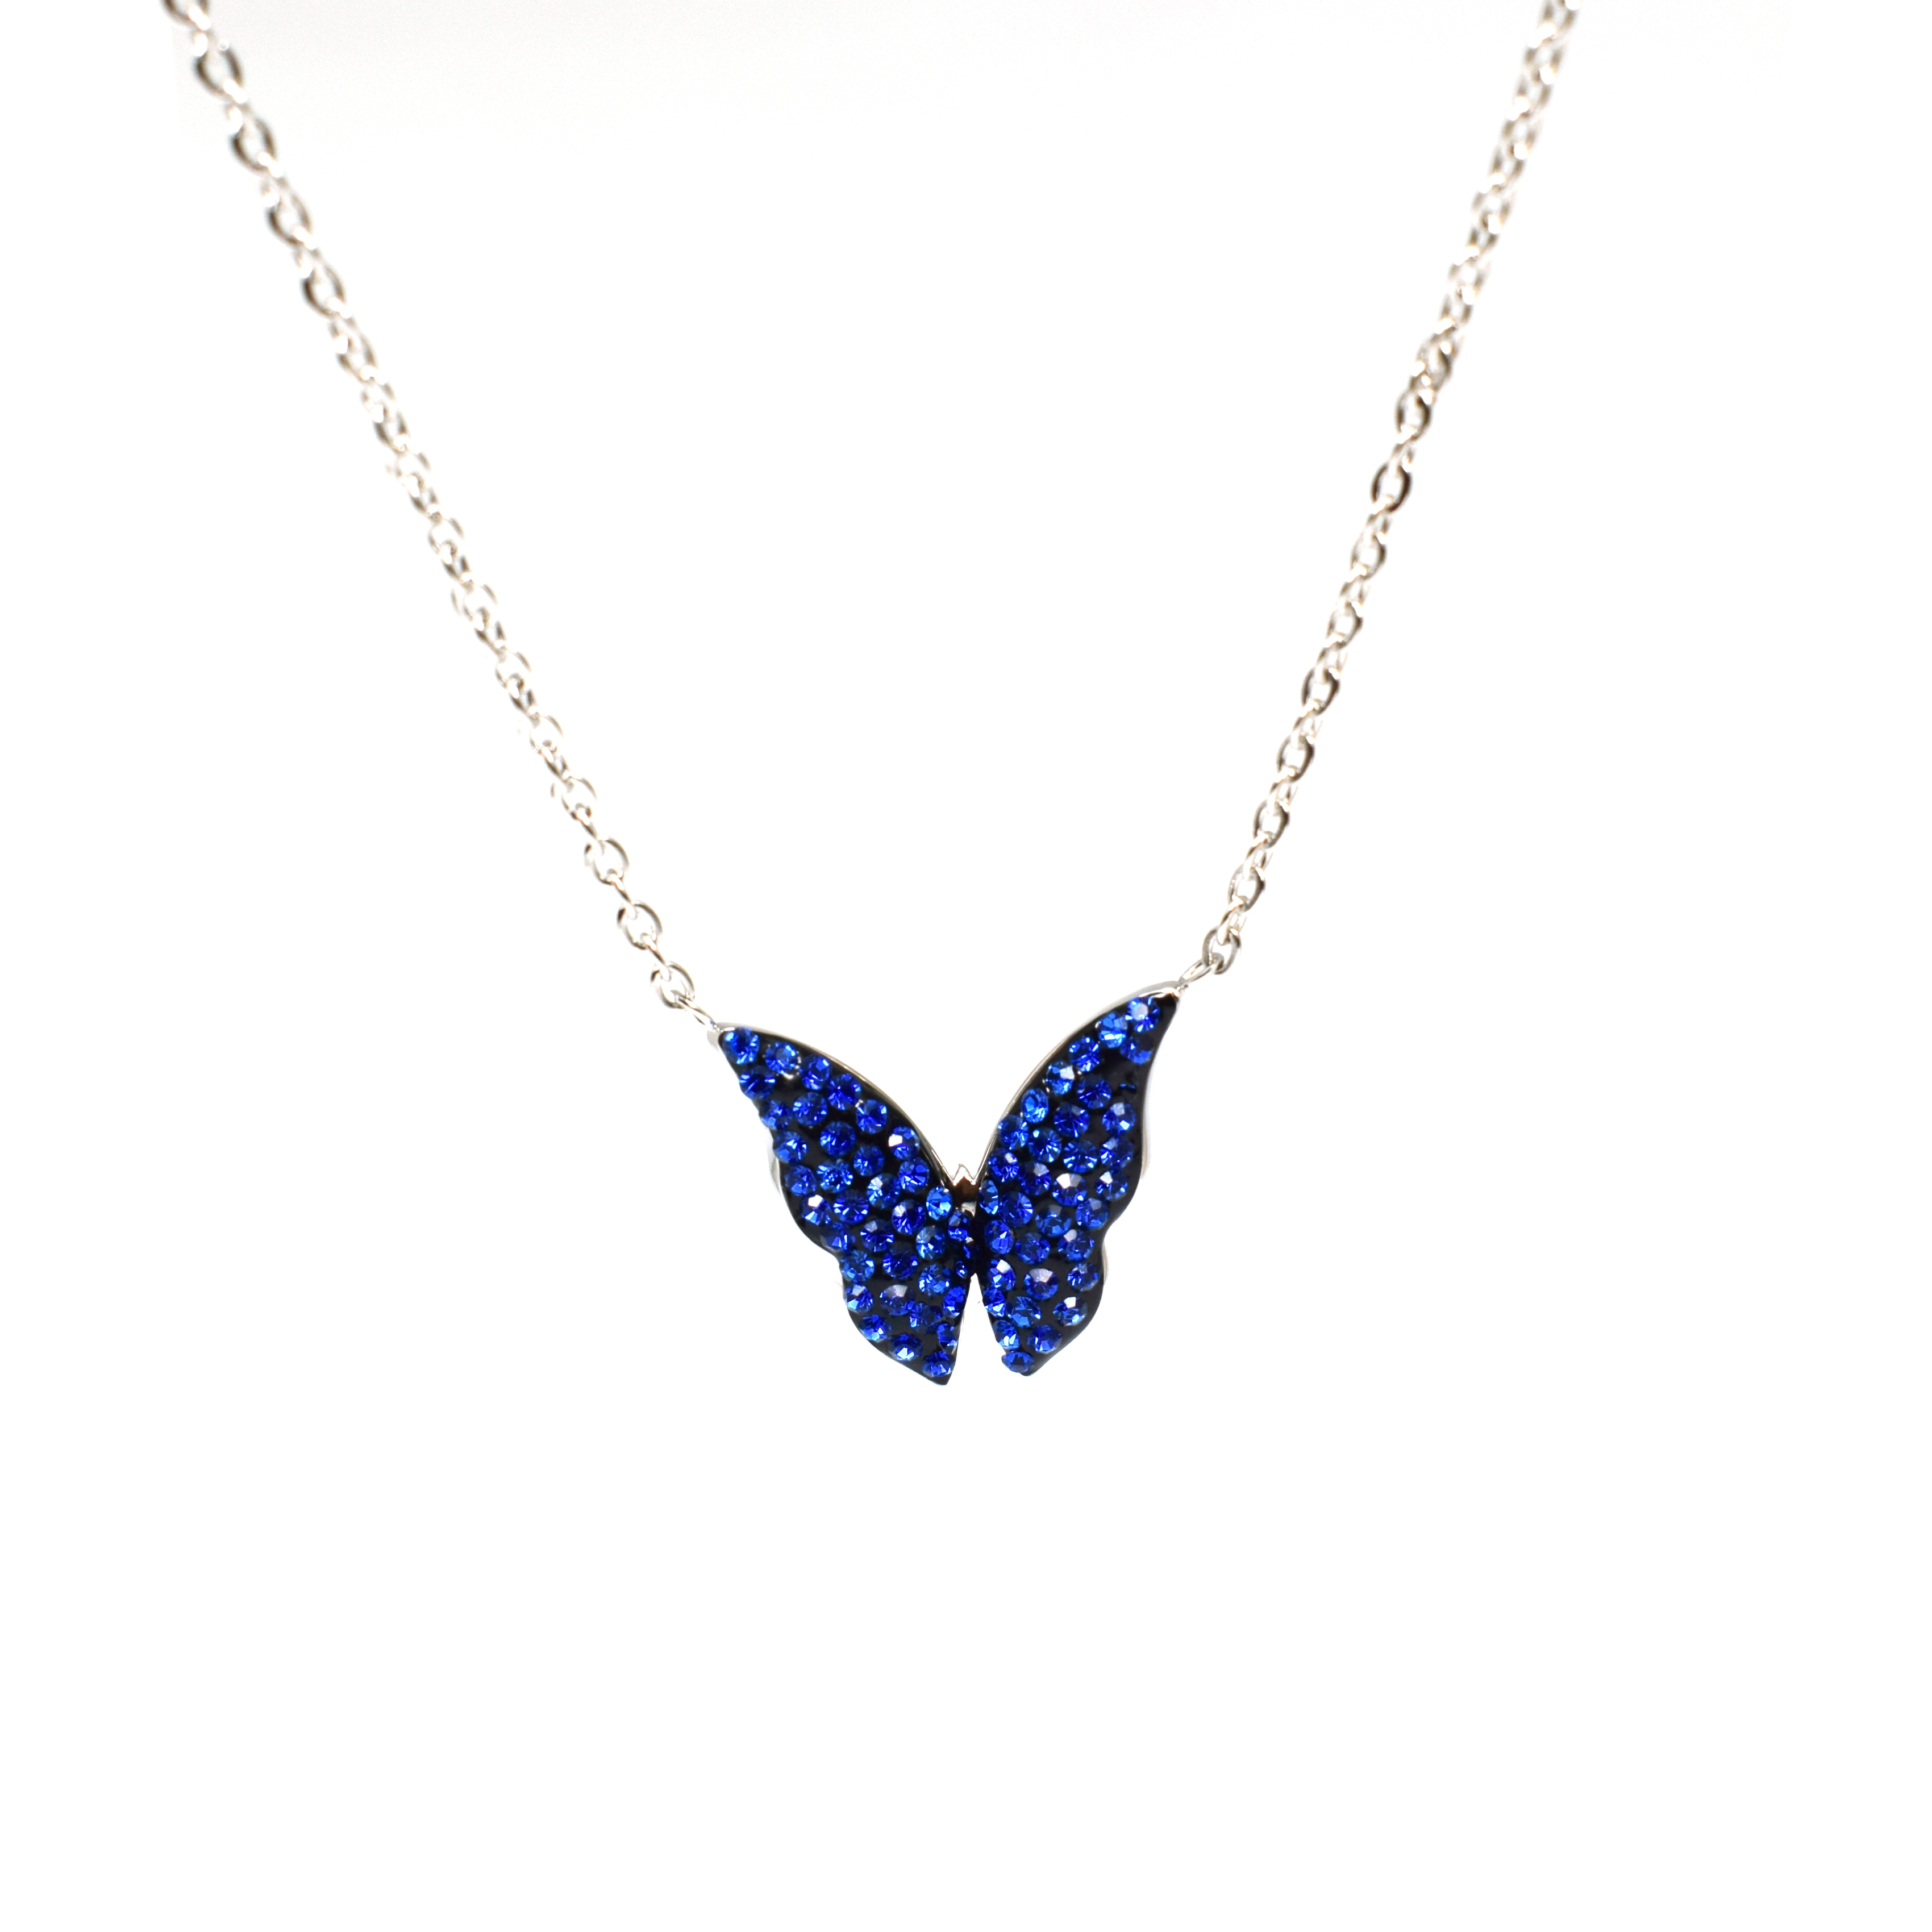 Get Stainless Steel Chain Butterfly Necklace for Women Gold Wholesale CZ Pendant Choker Necklace Jewelry Bridesmaid Gifts